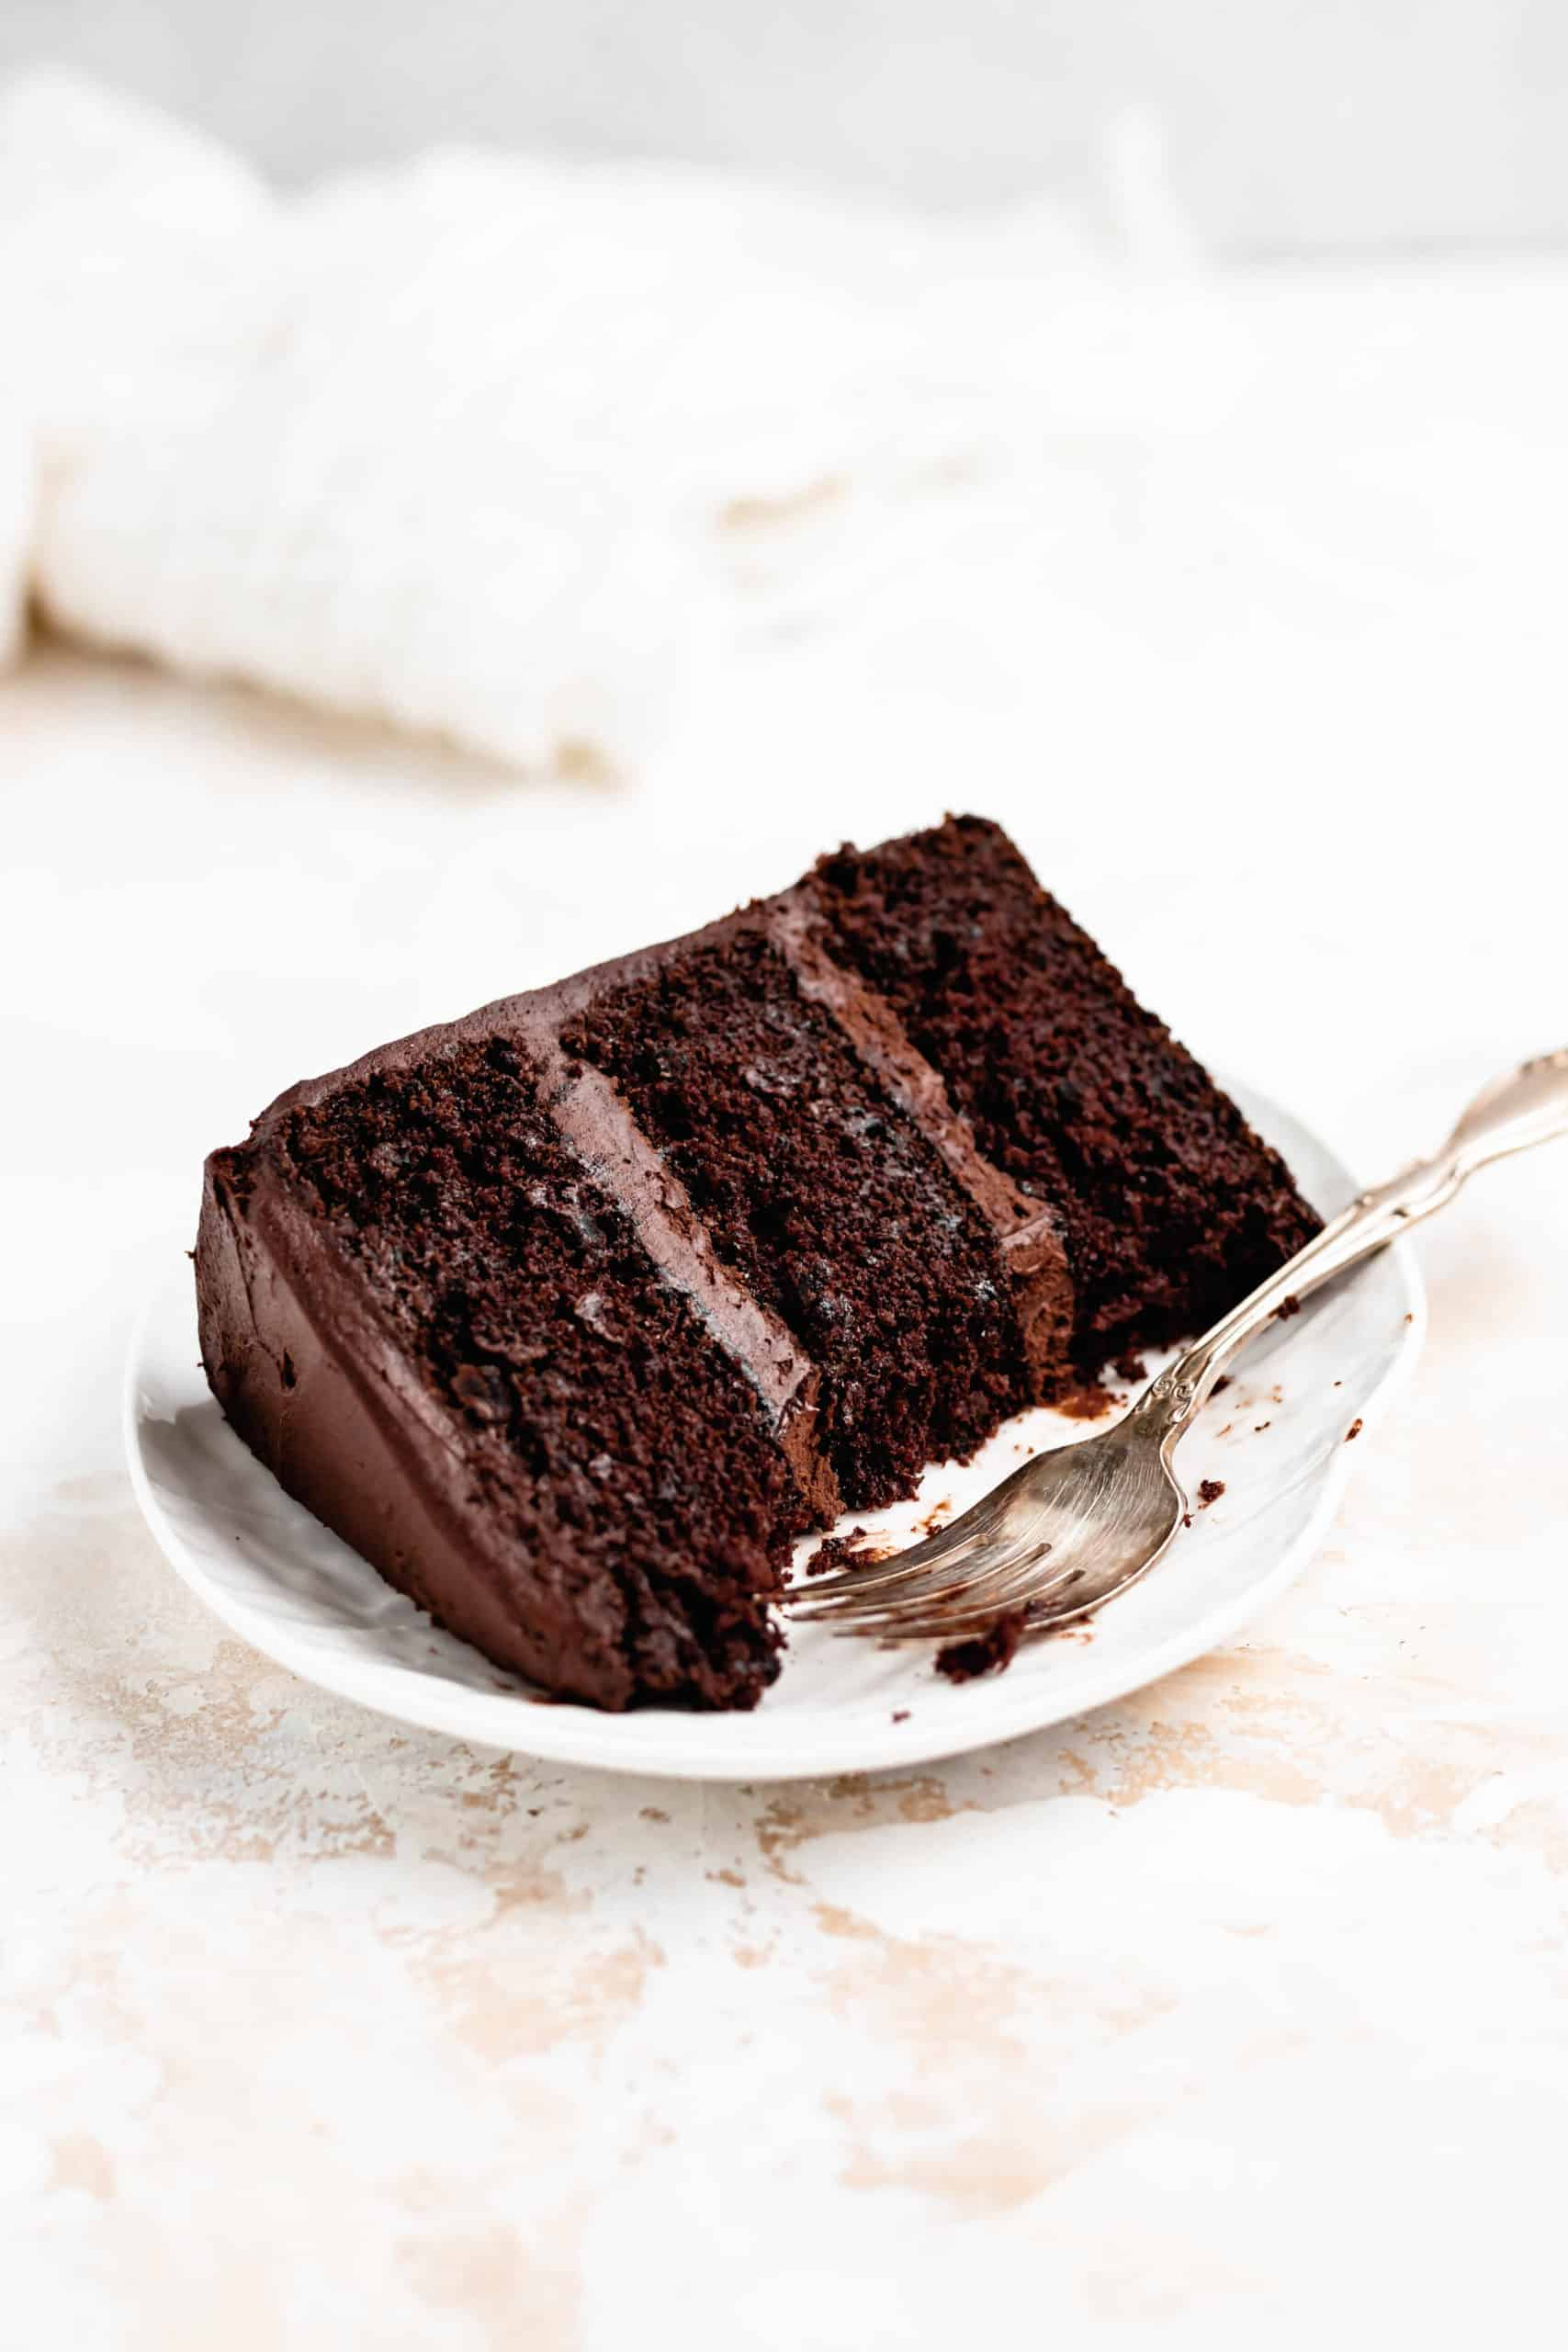 slice of moist chocolate cake on a plate